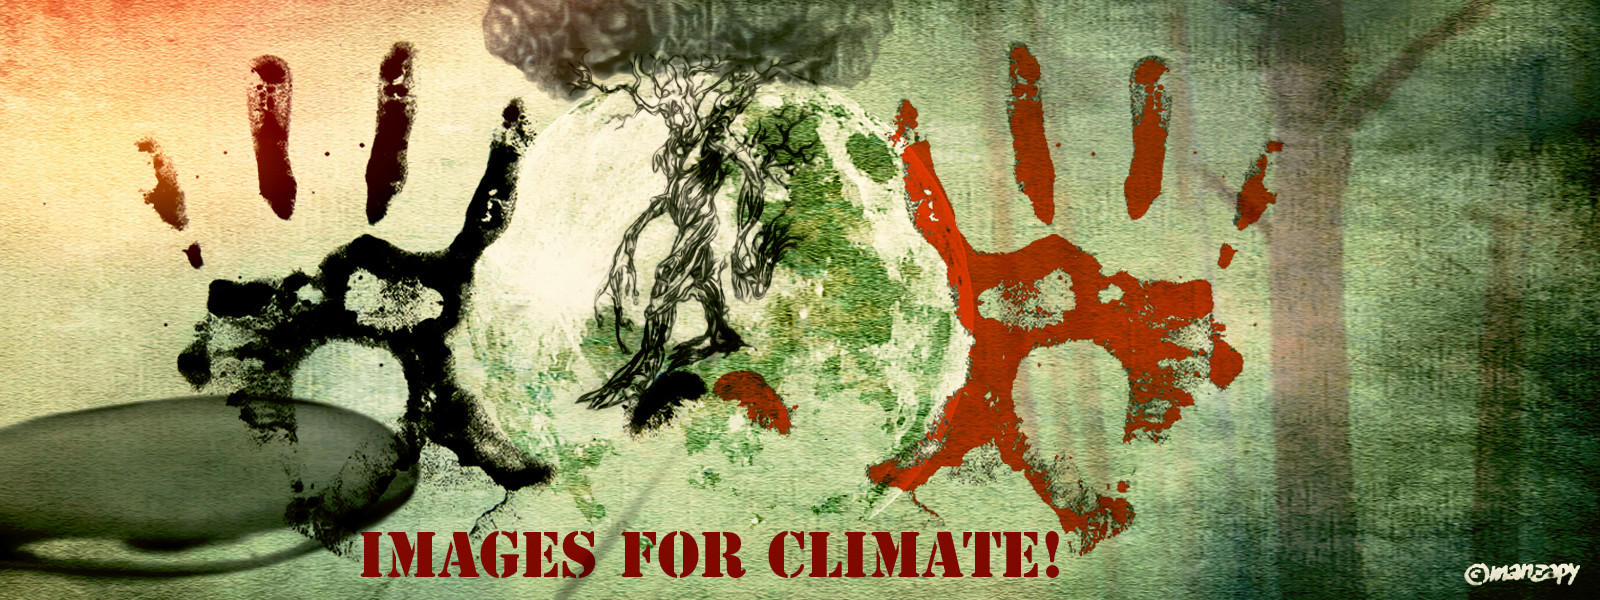 images for climate